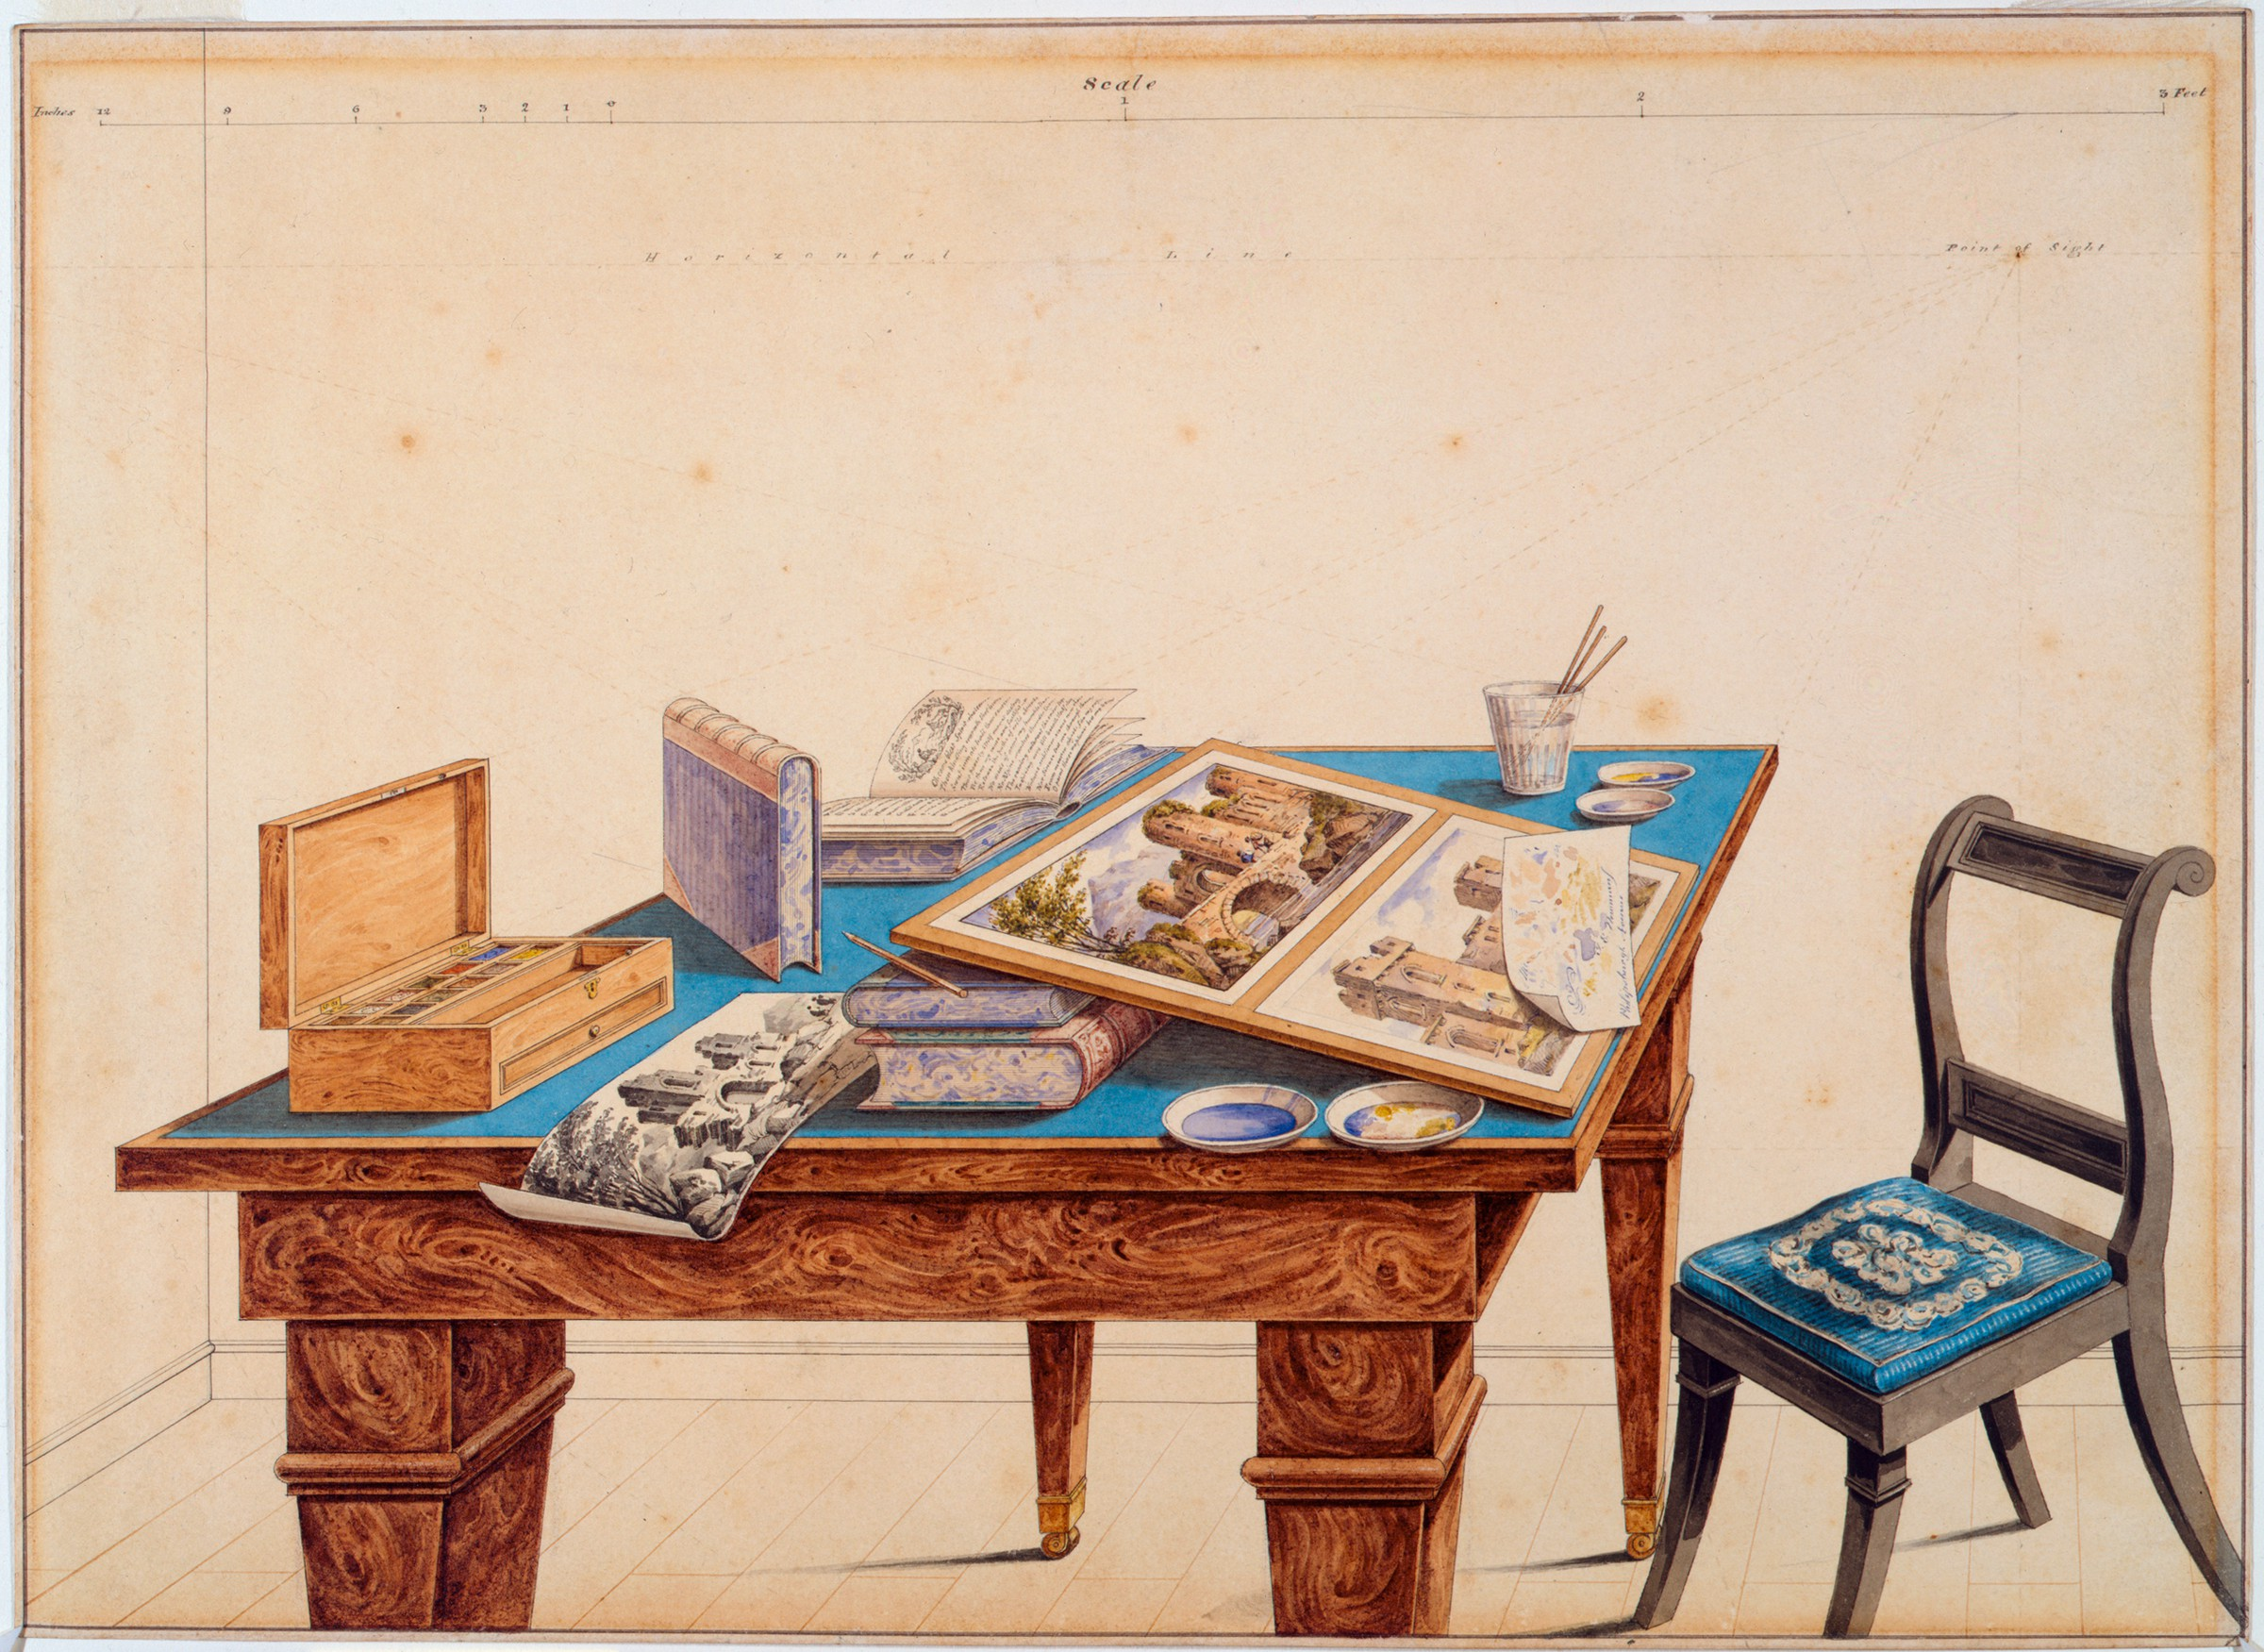 In the center of this drawing, there is a table with a blue top; to its right is a chair. The table is covered with books, a box of watercolors, small dishes, and a glass containing brushes. Also on the table are two watercolor landscapes attached to a board and another watercolor landscape.